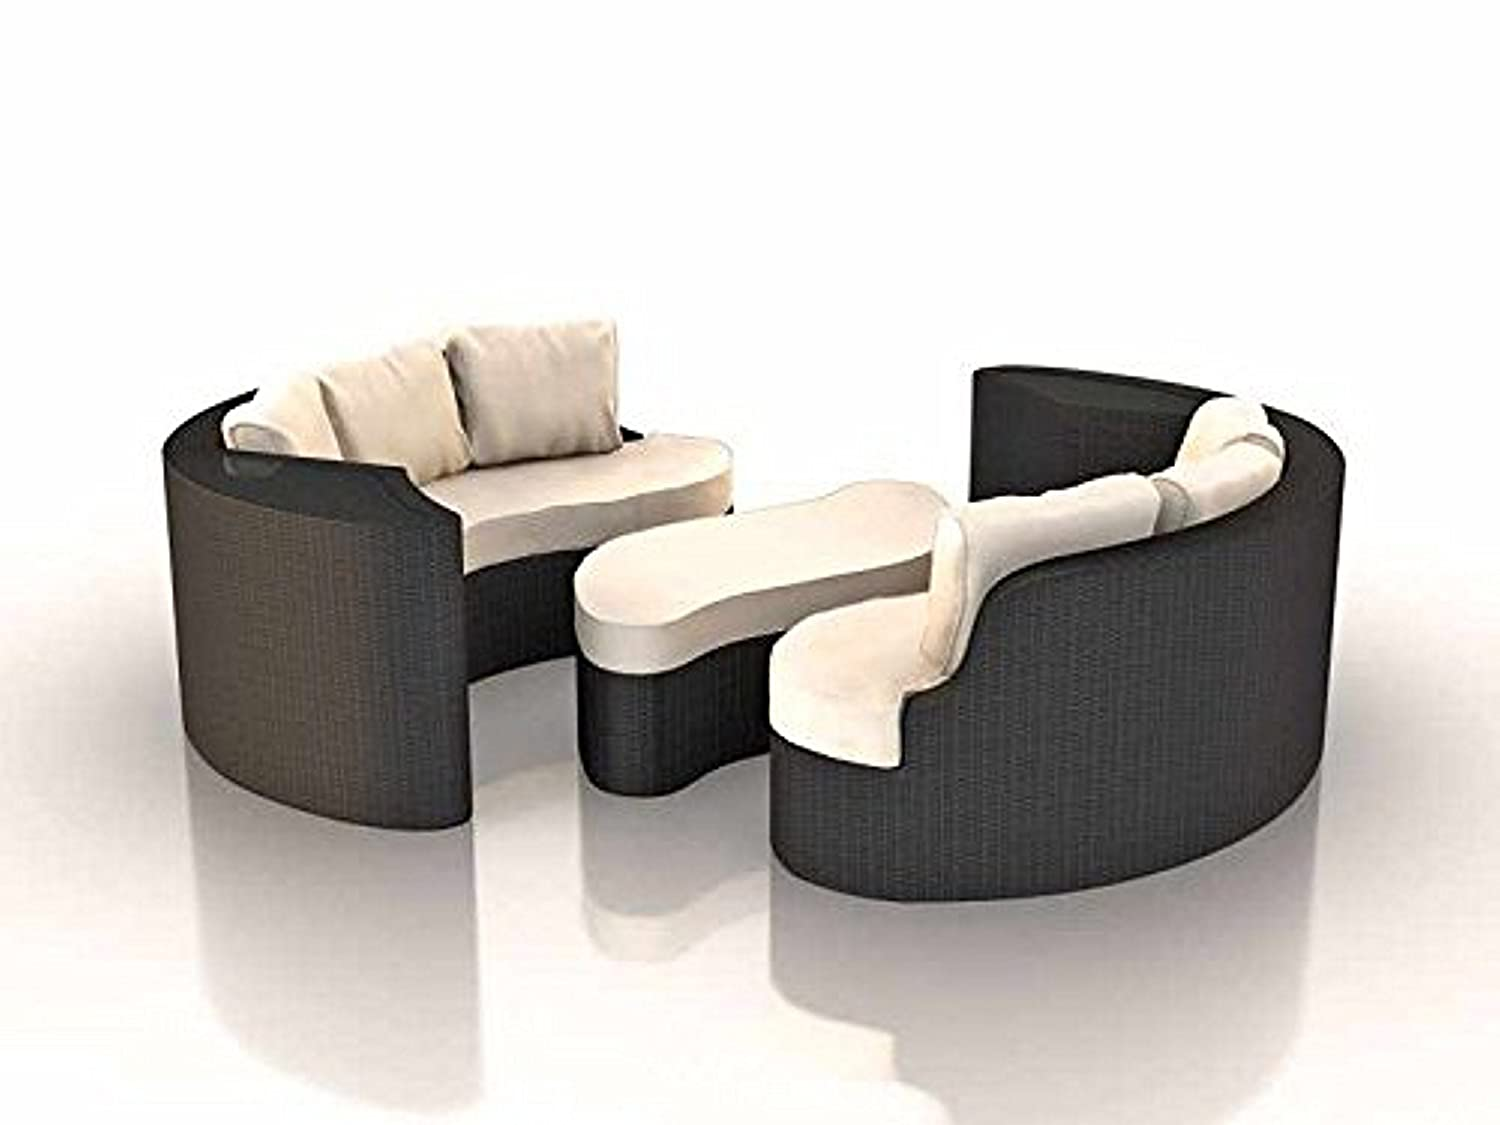 rattaninsel emmi grau lounge liegeinsel sofa garnitur. Black Bedroom Furniture Sets. Home Design Ideas